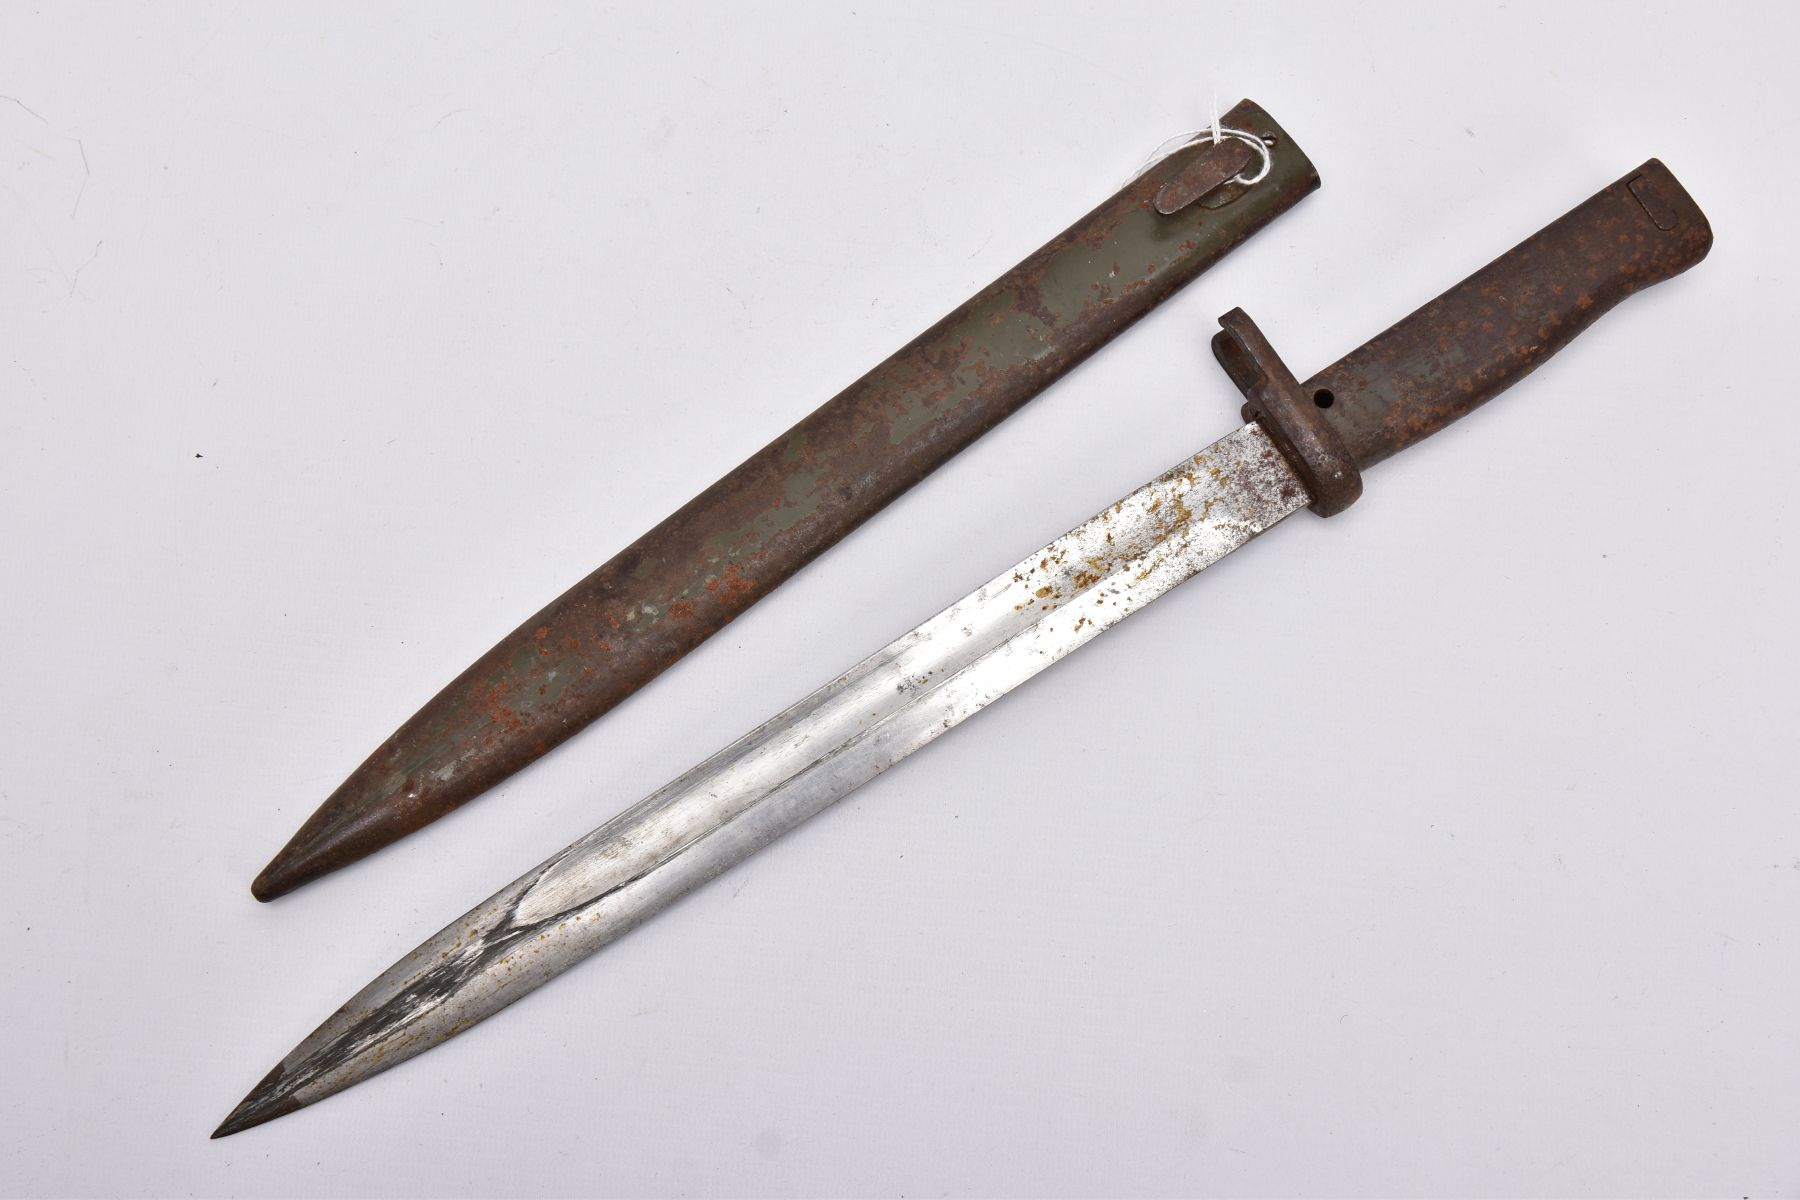 A GERMAN ERSATZ BAYONET AND SCABBARD, this example believed to be the shortened Turkish variant,